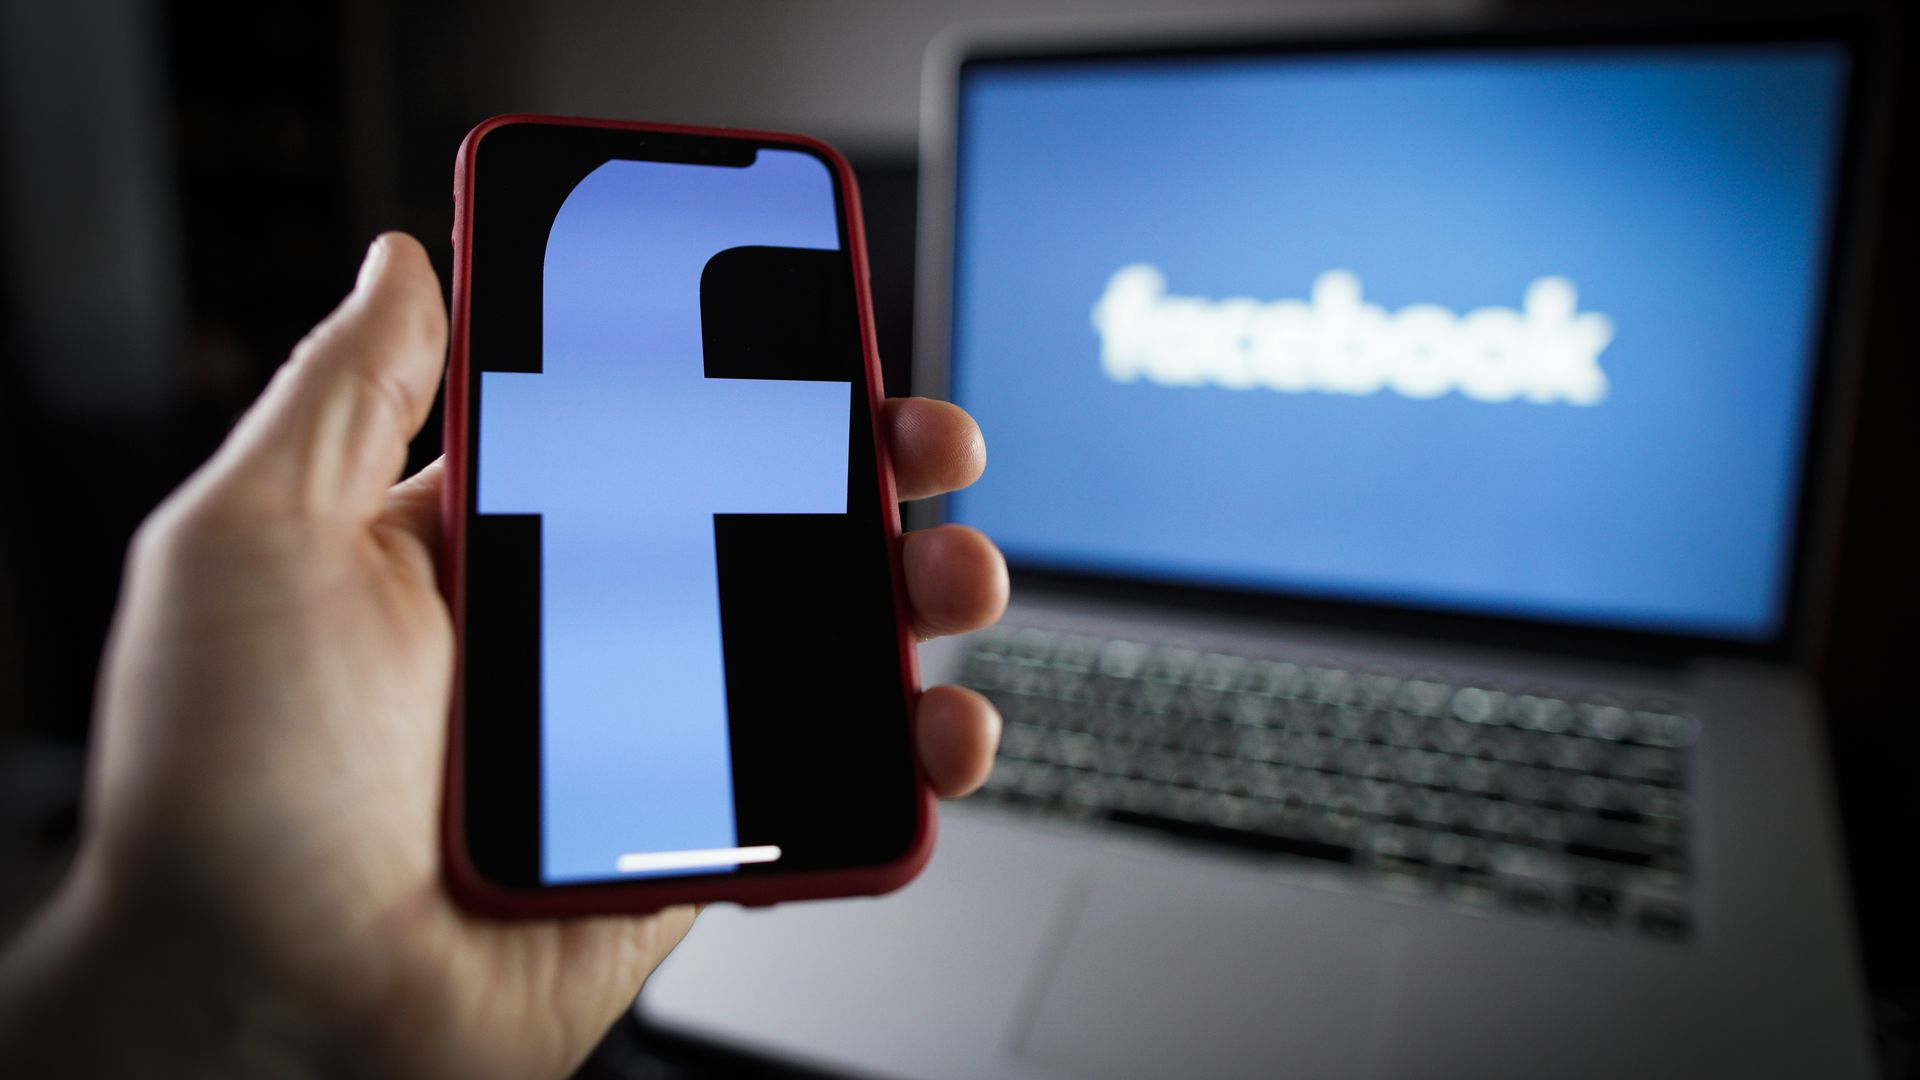 Facebook says local news is the top content pick of its users.